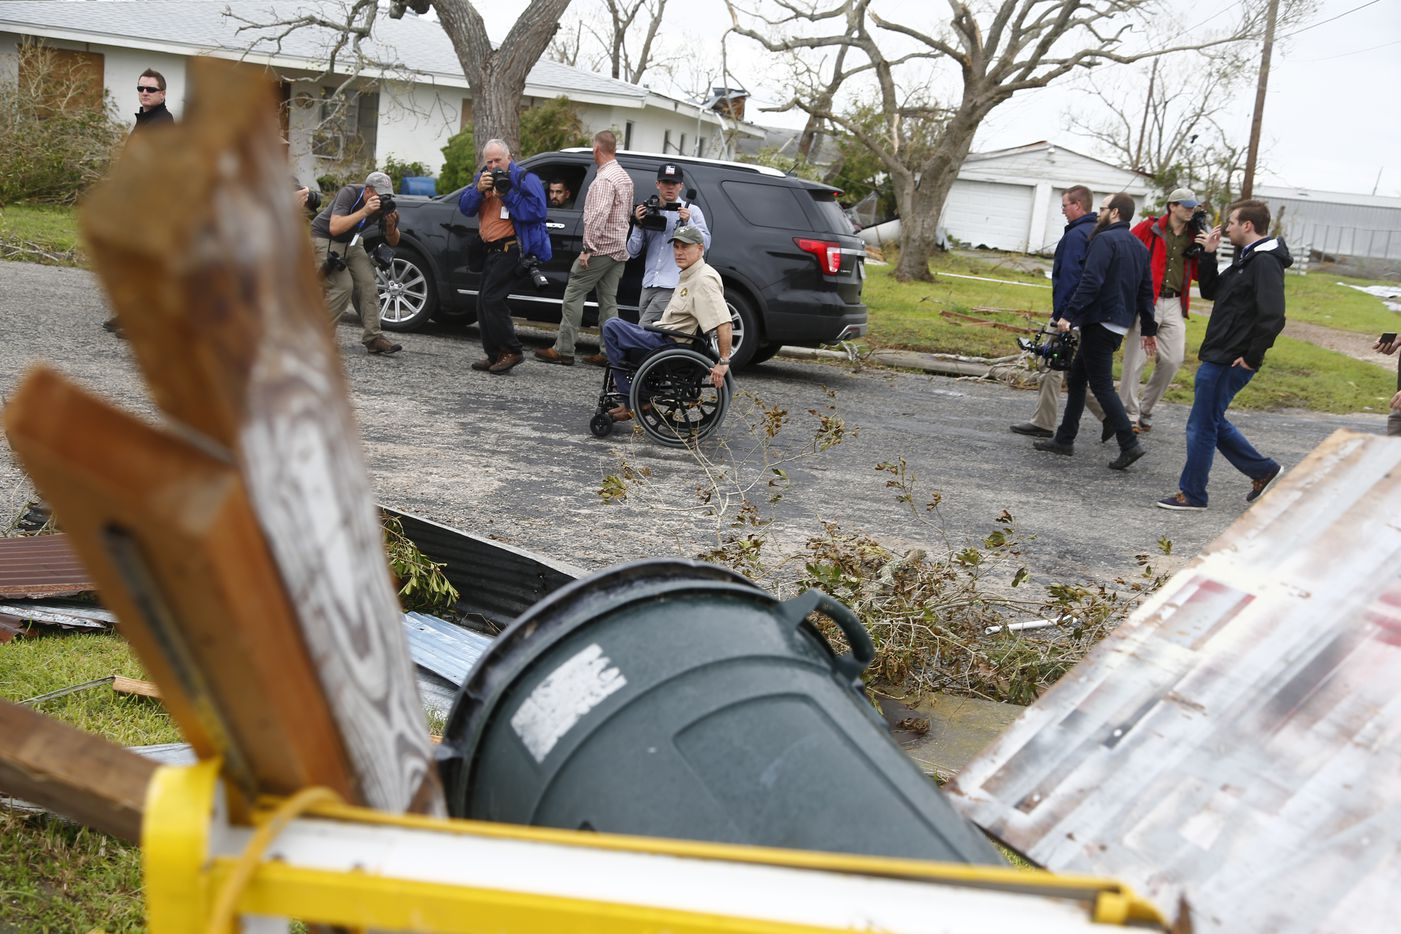 Texas Gov. Greg Abbott is tours Rockport with the media after Hurricane Harvey in Rockport, Texas on Aug. 28, 2017.